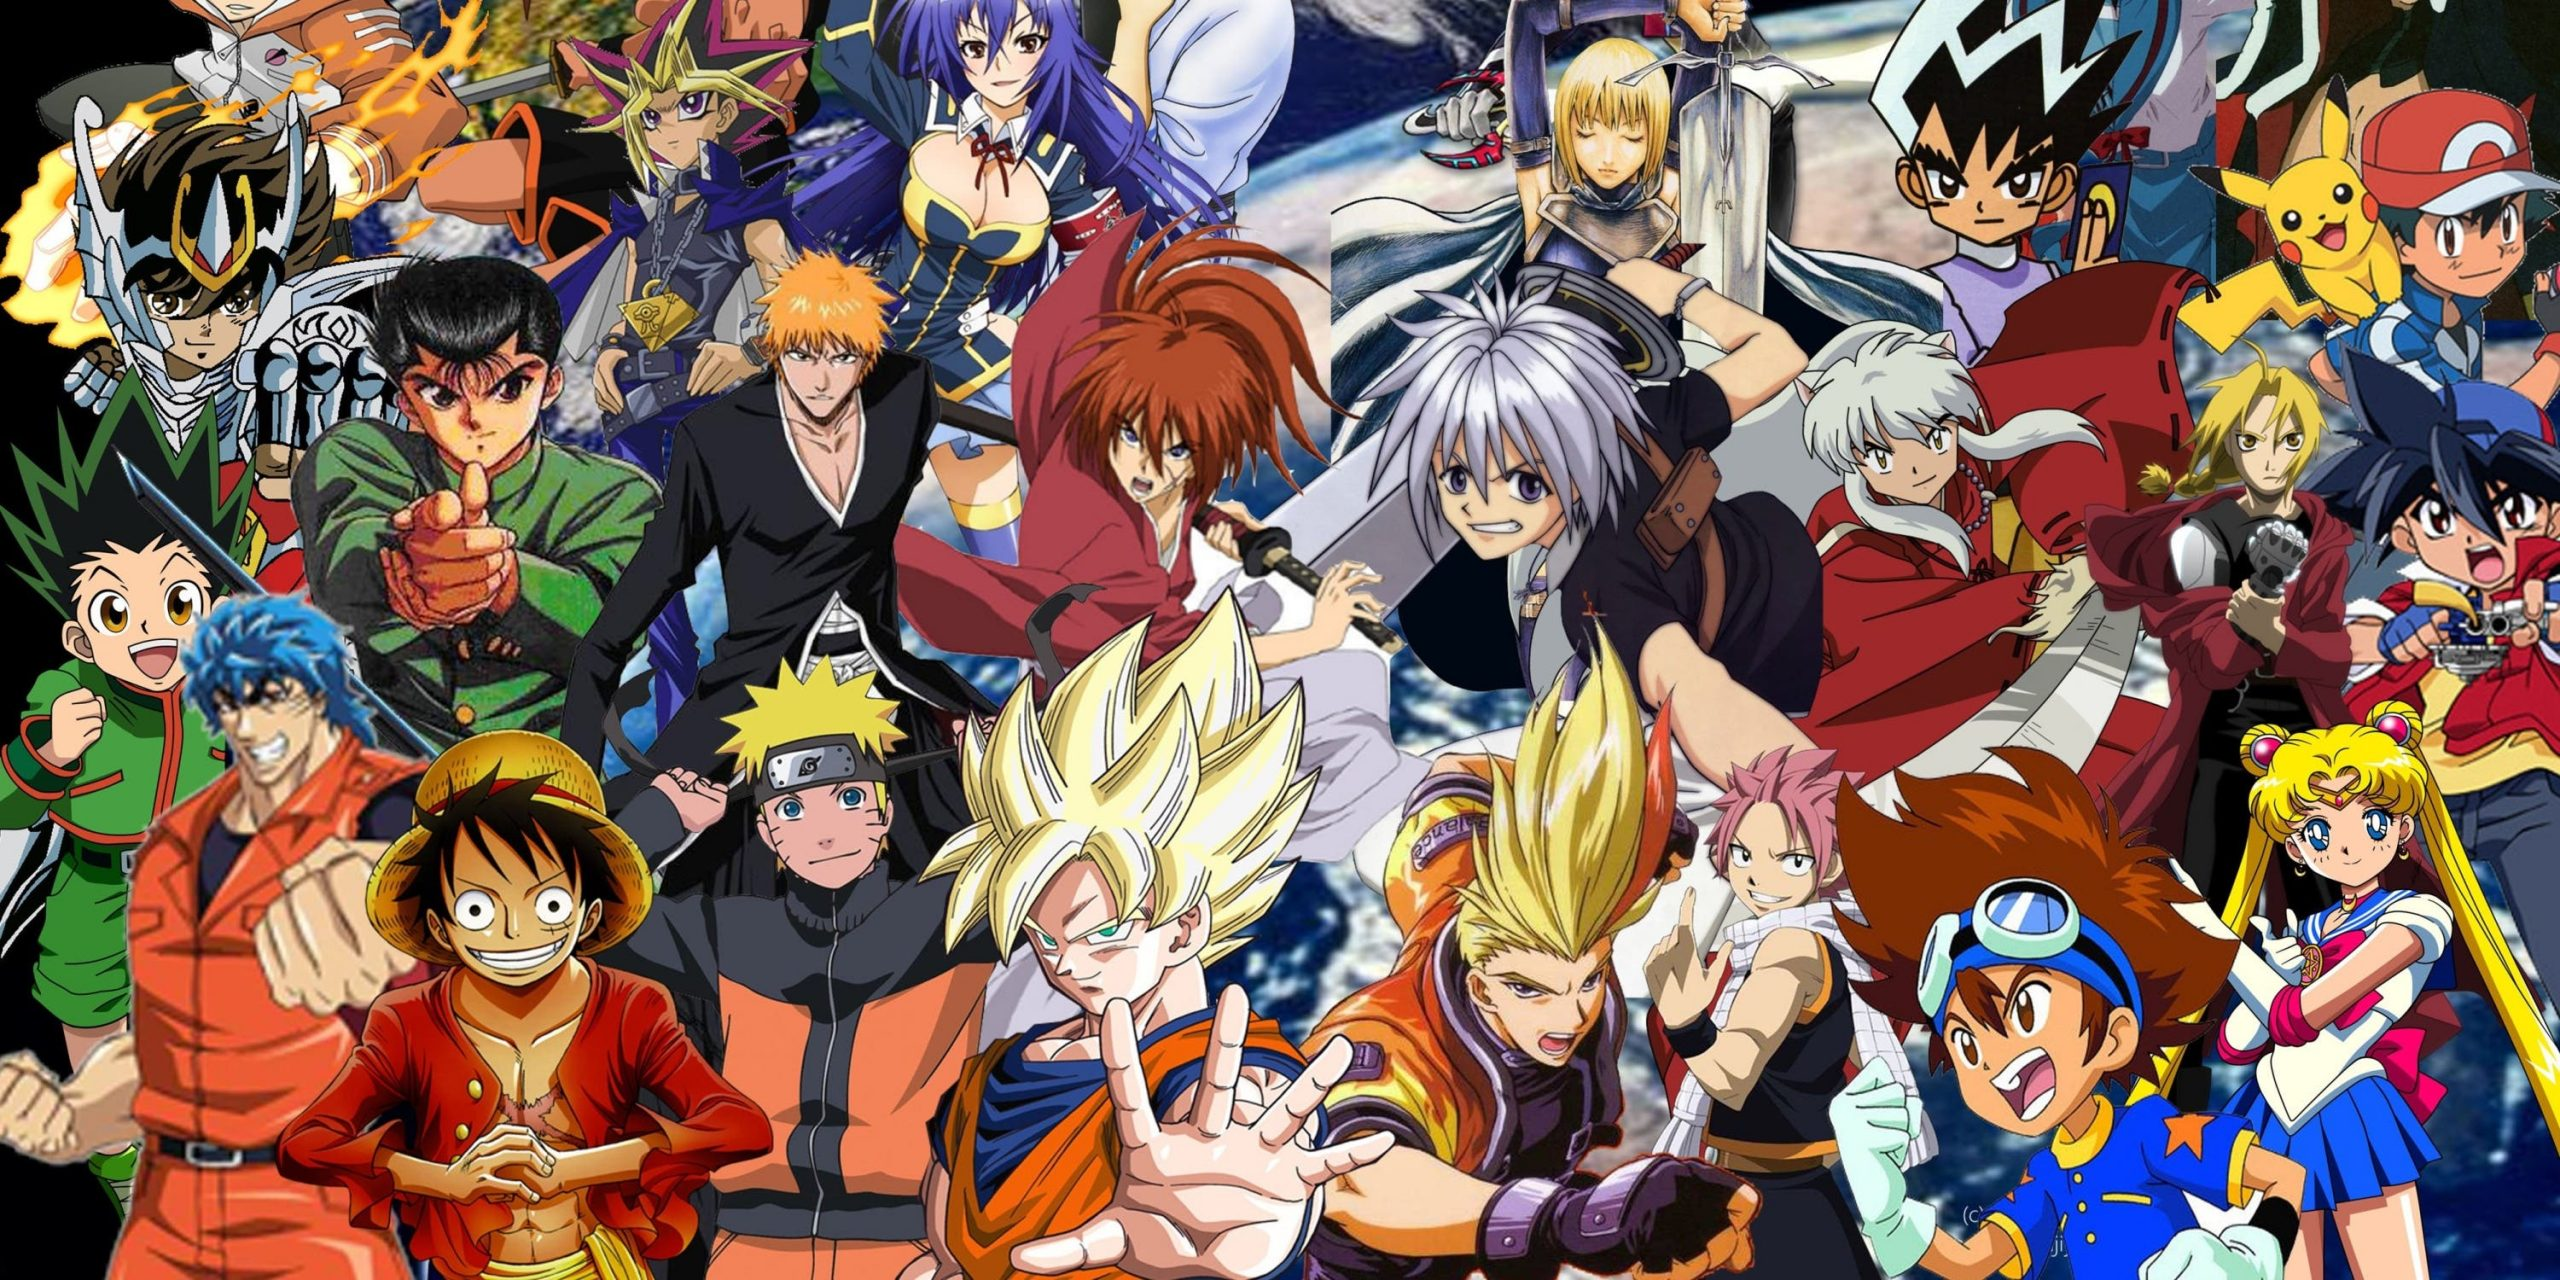 The-15-Most-Powerful-Anime-Characters-Of-All-Time